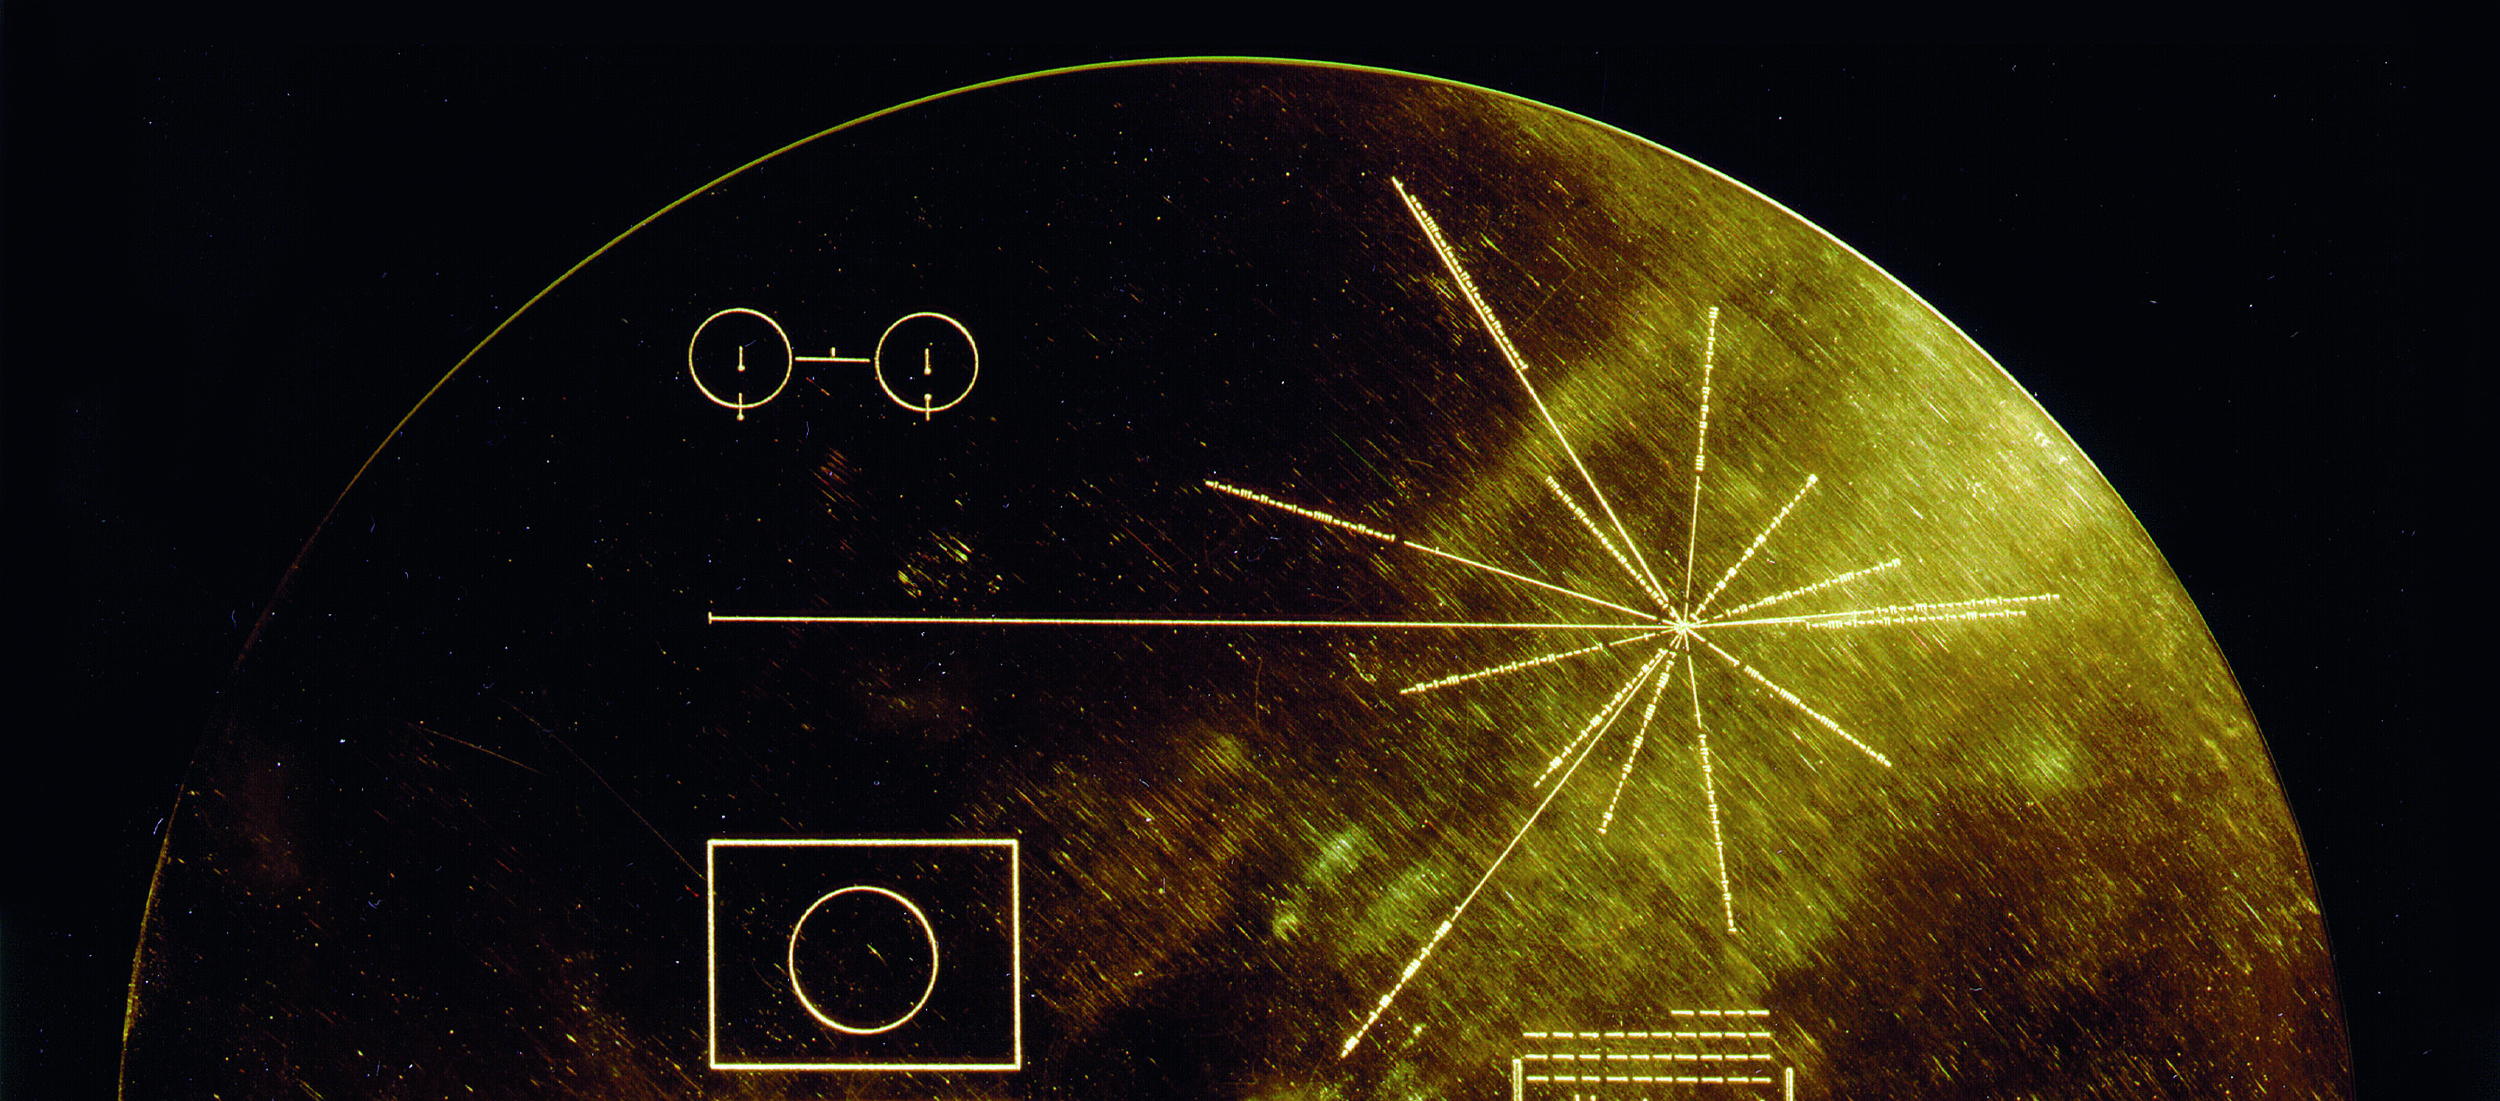 Design Matters: The Golden Record